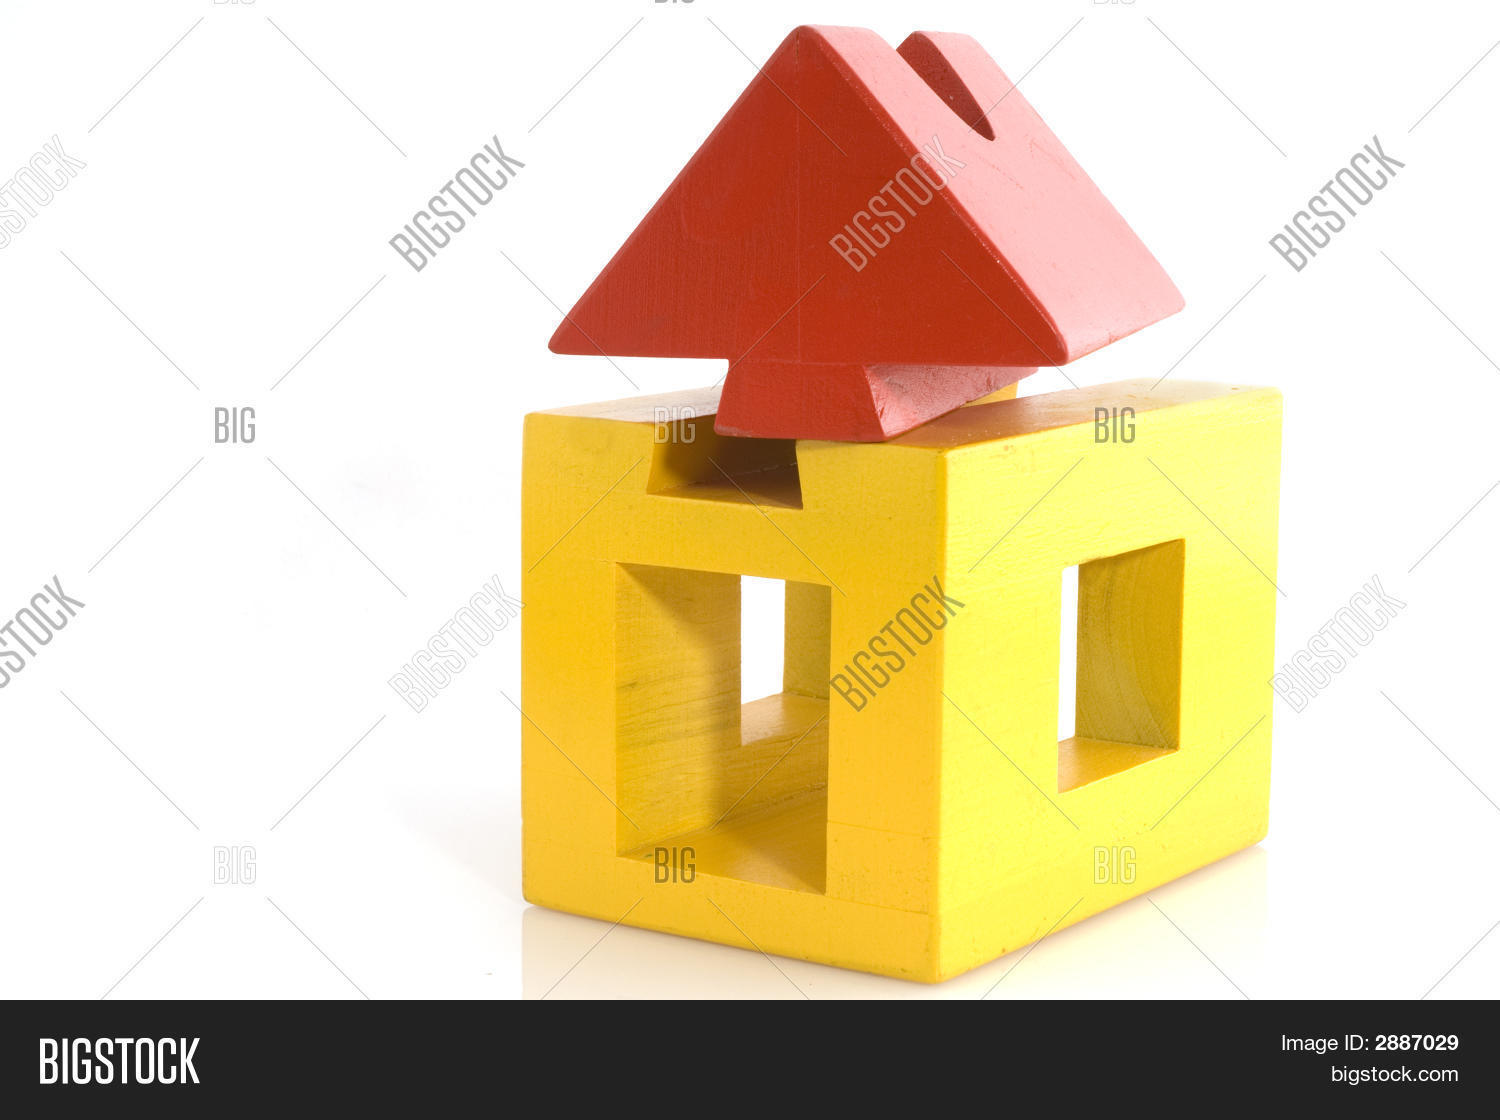 Yellow red house image photo bigstock for Yellow and red house